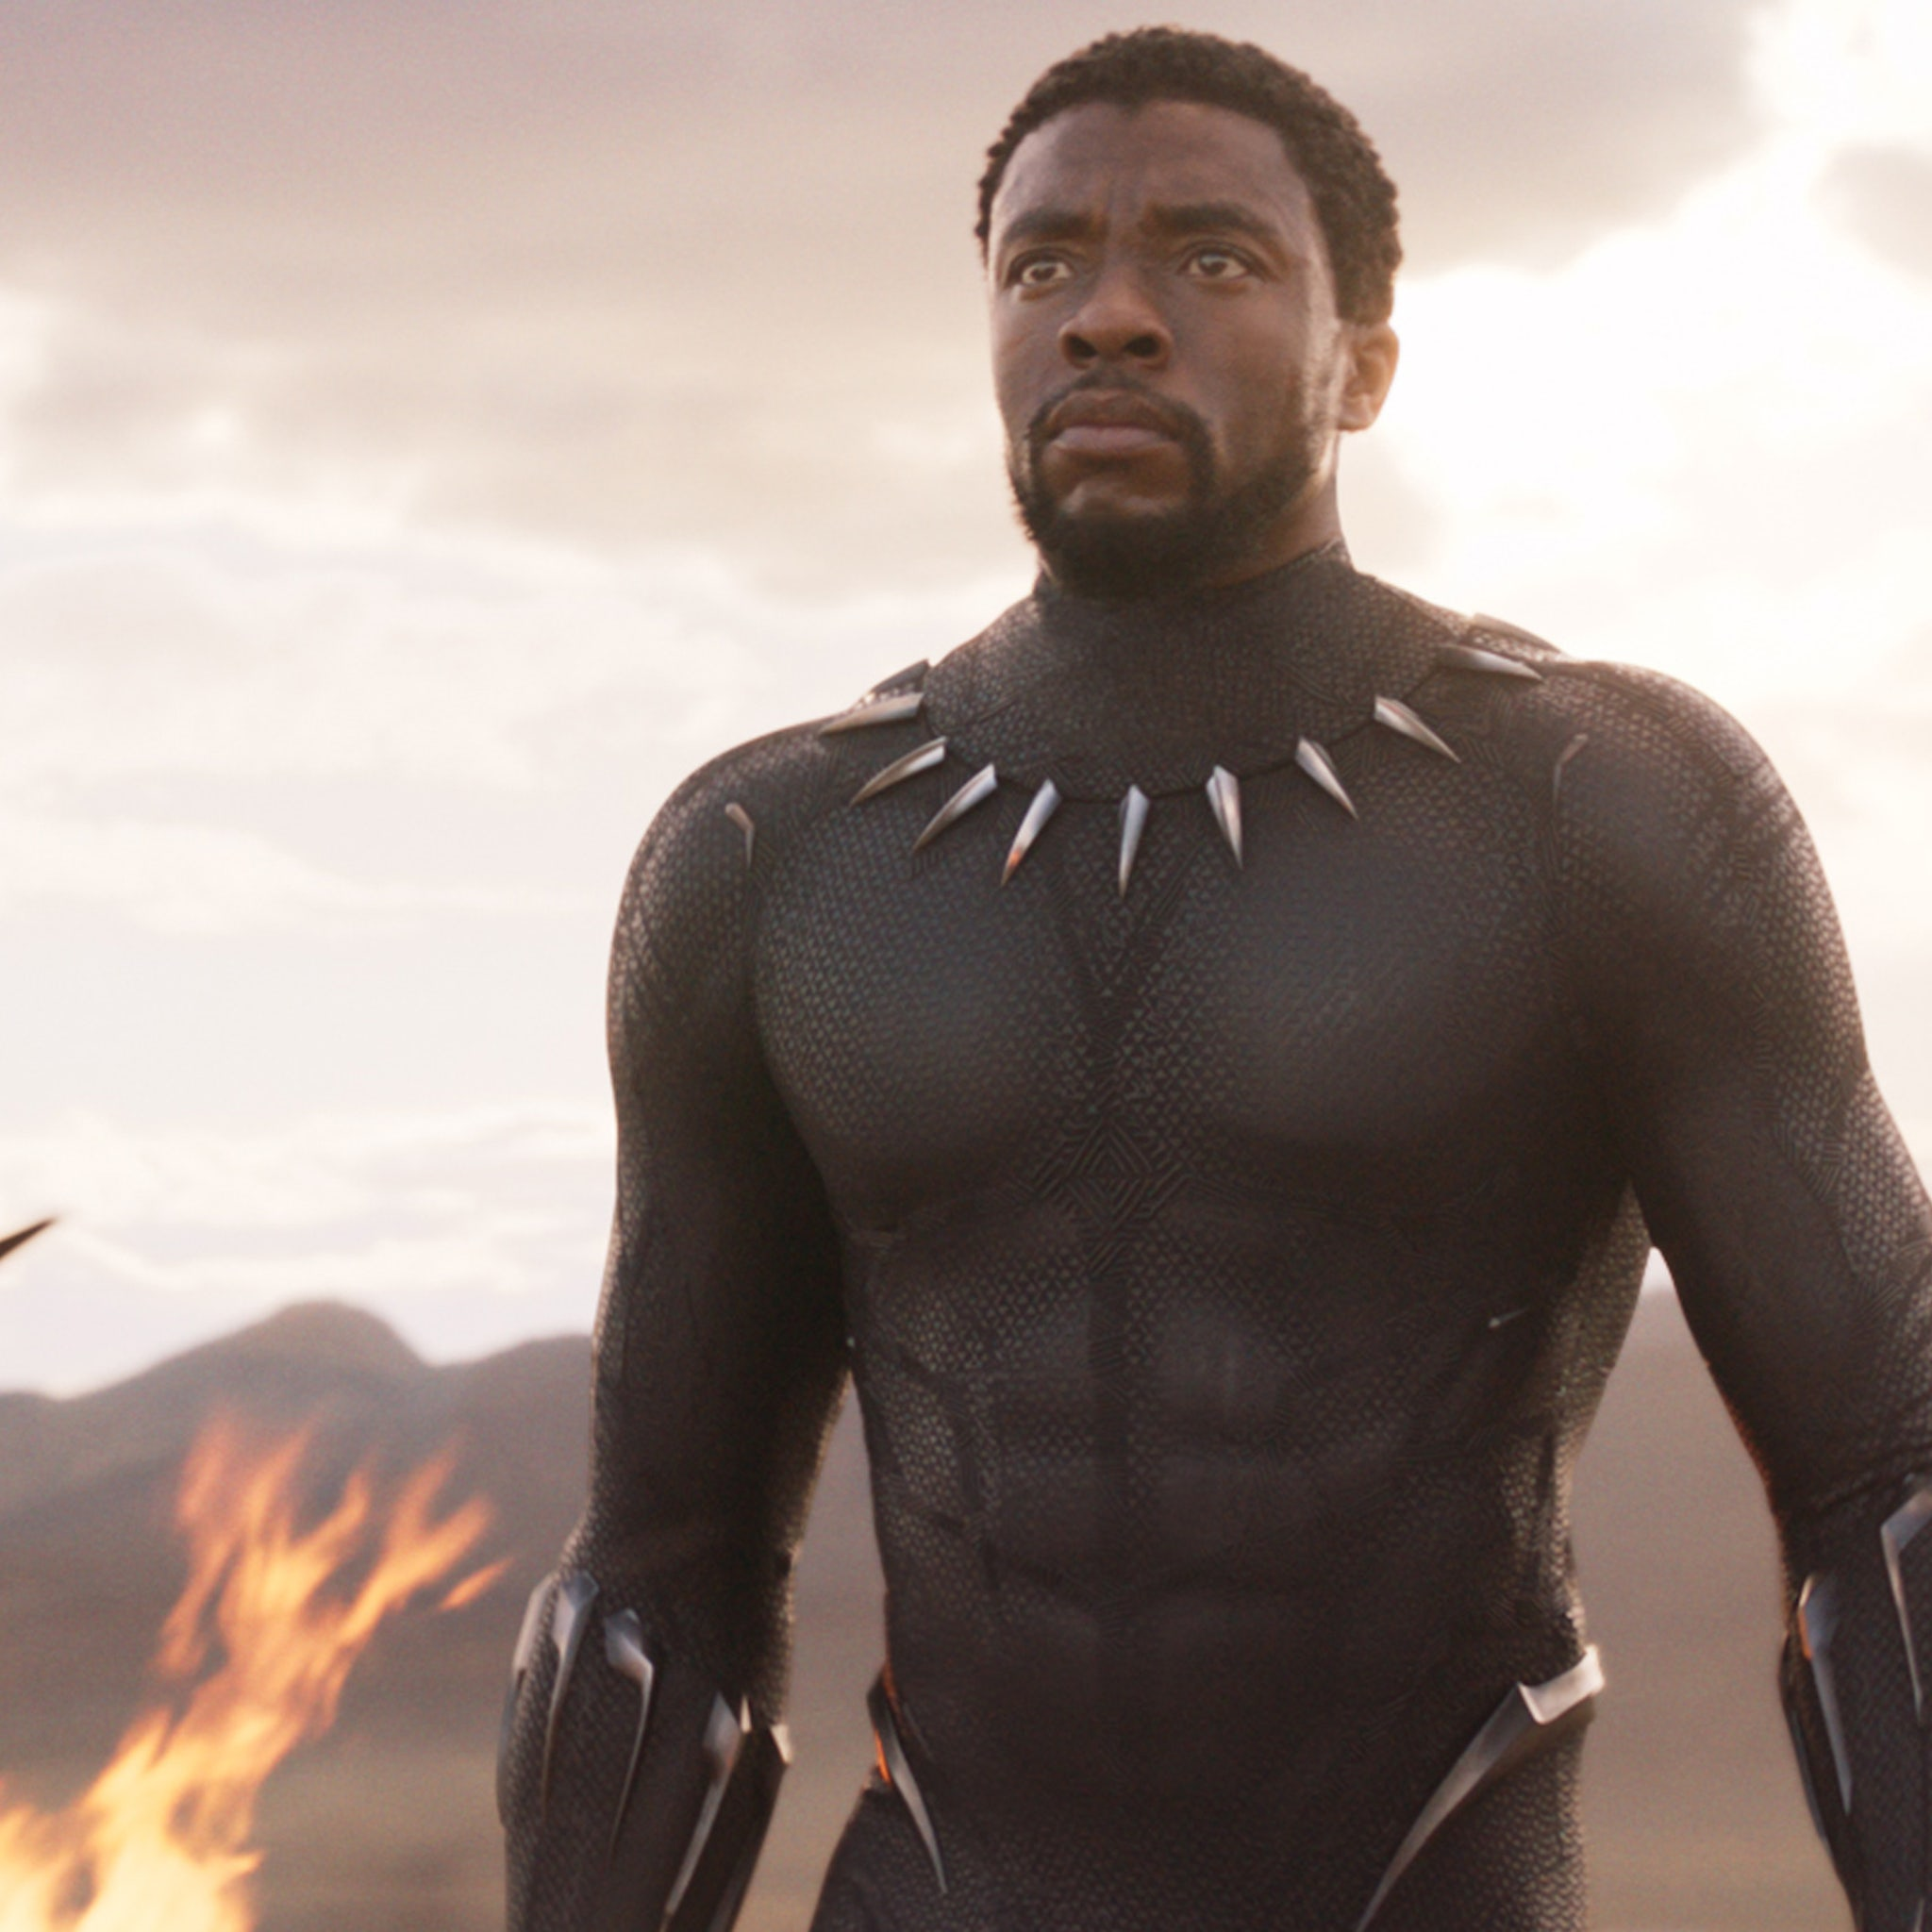 Chadwick Boseman Is The Superhero We Need Right Now In Latest Black Panther Trailer